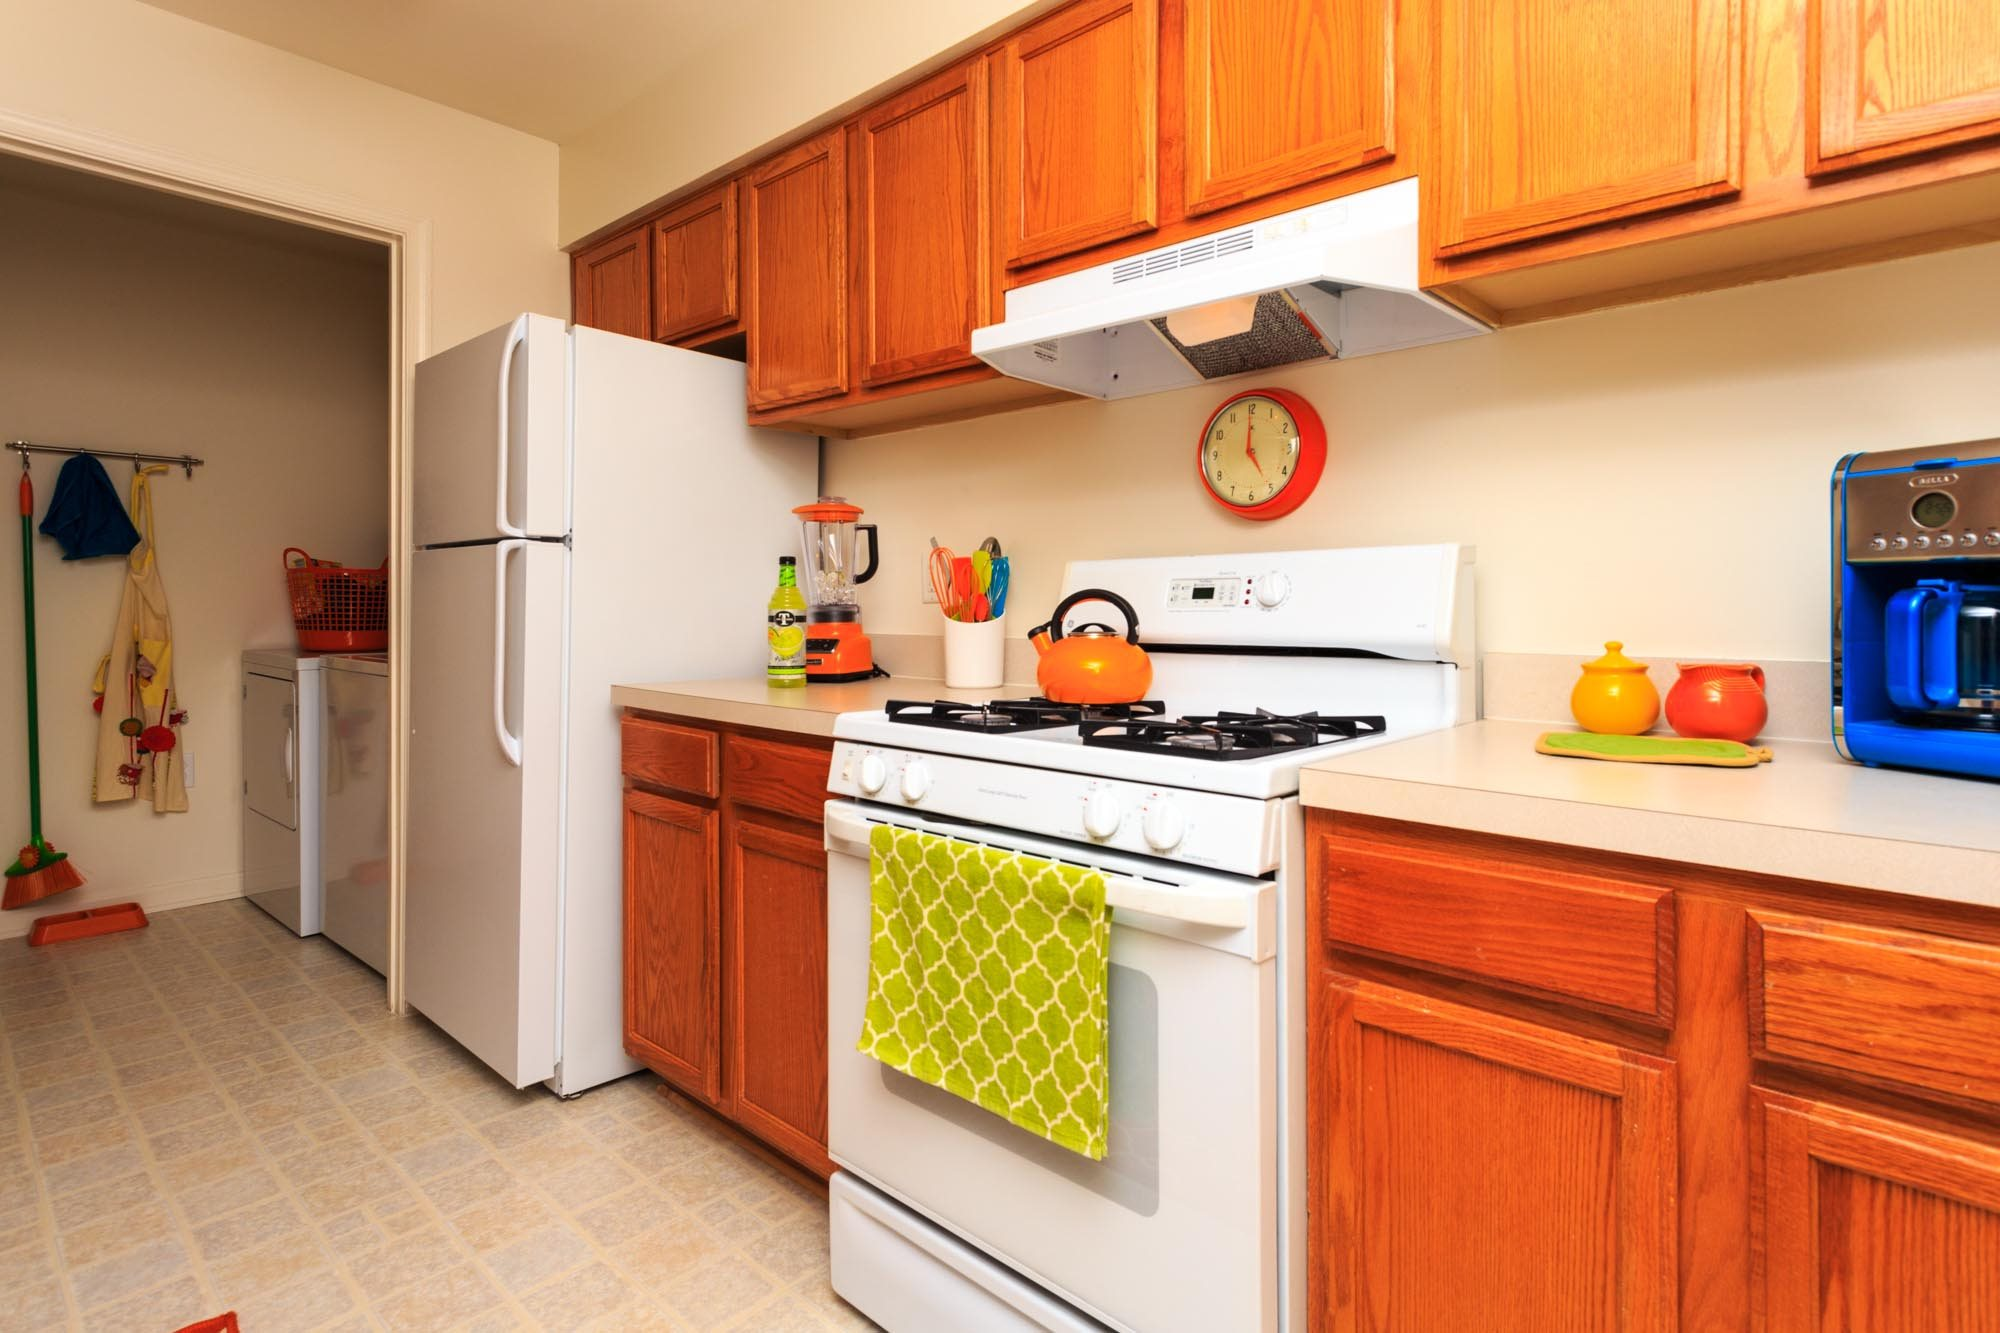 Contemporary Kitchen at The Residences at the Manor Apartments, Frederick, MD 21702